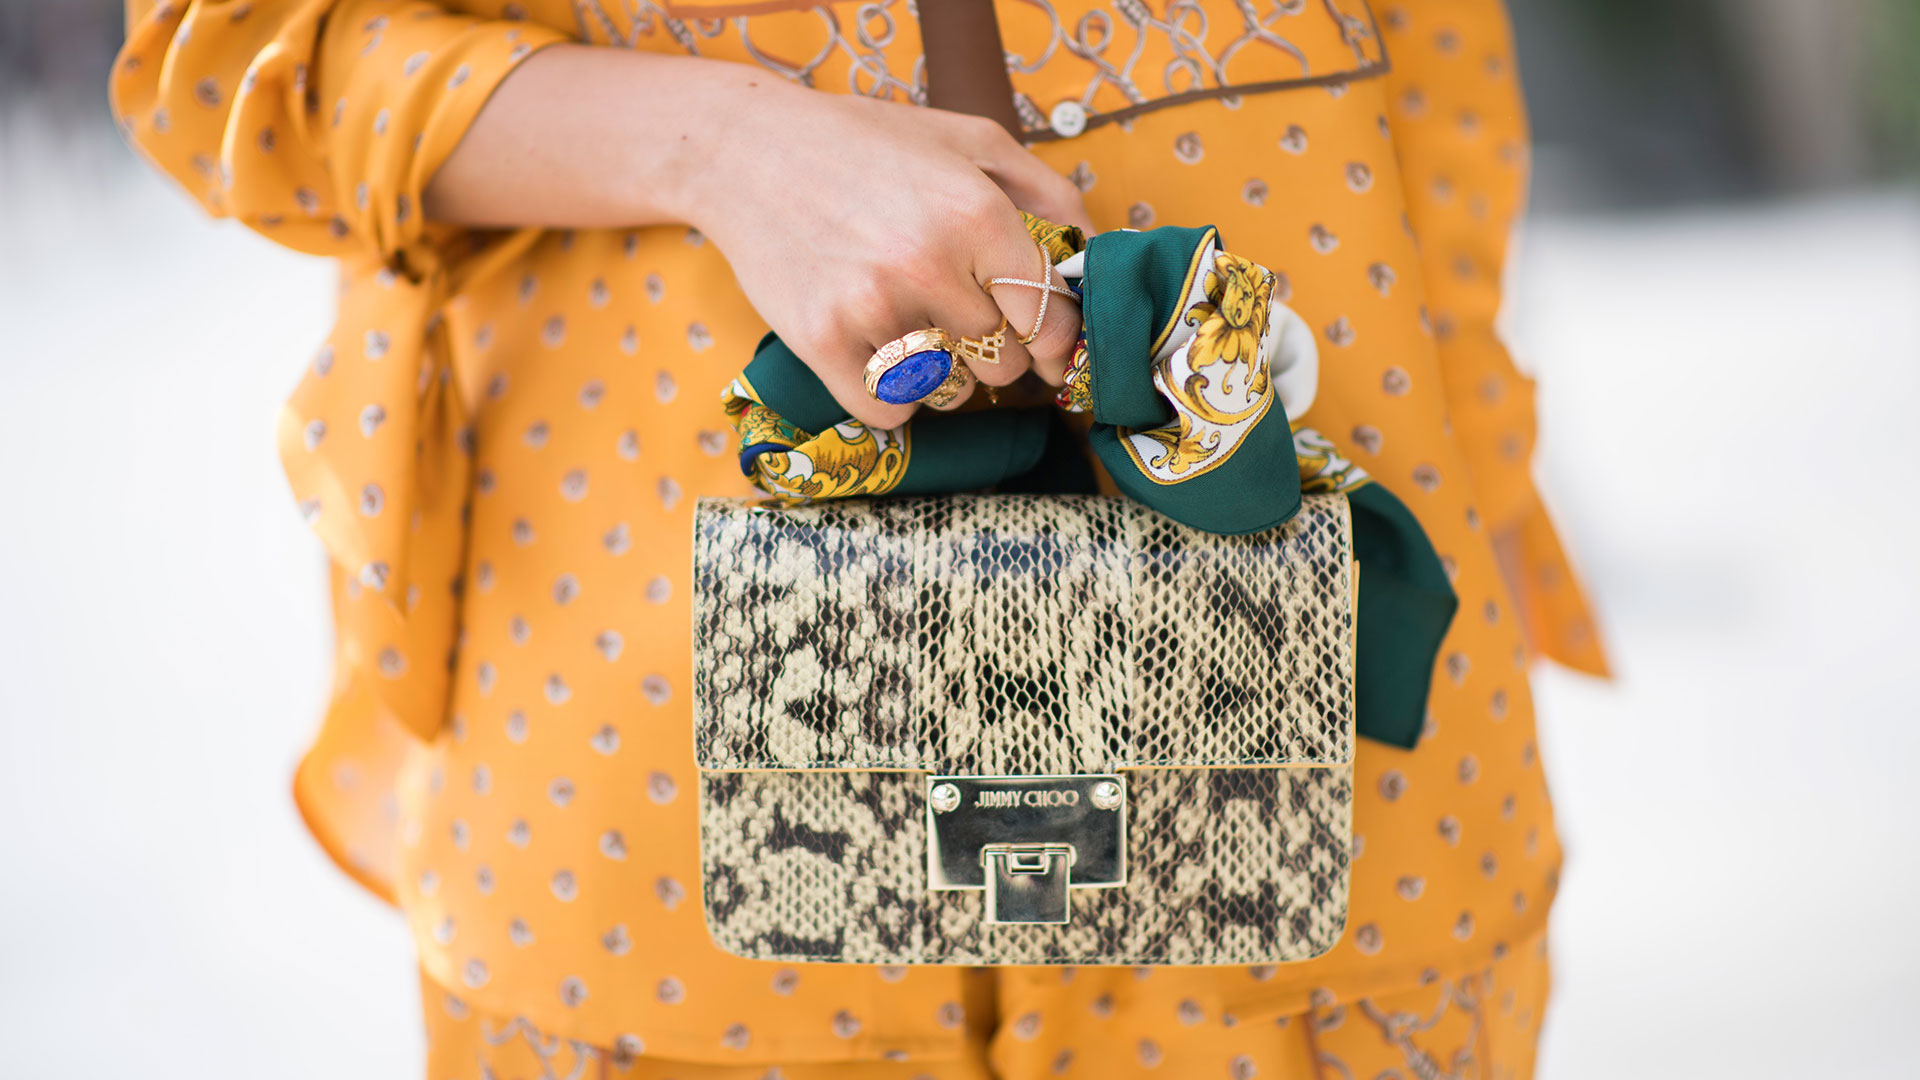 STYLECASTER | How to Find Your Signature Accessory